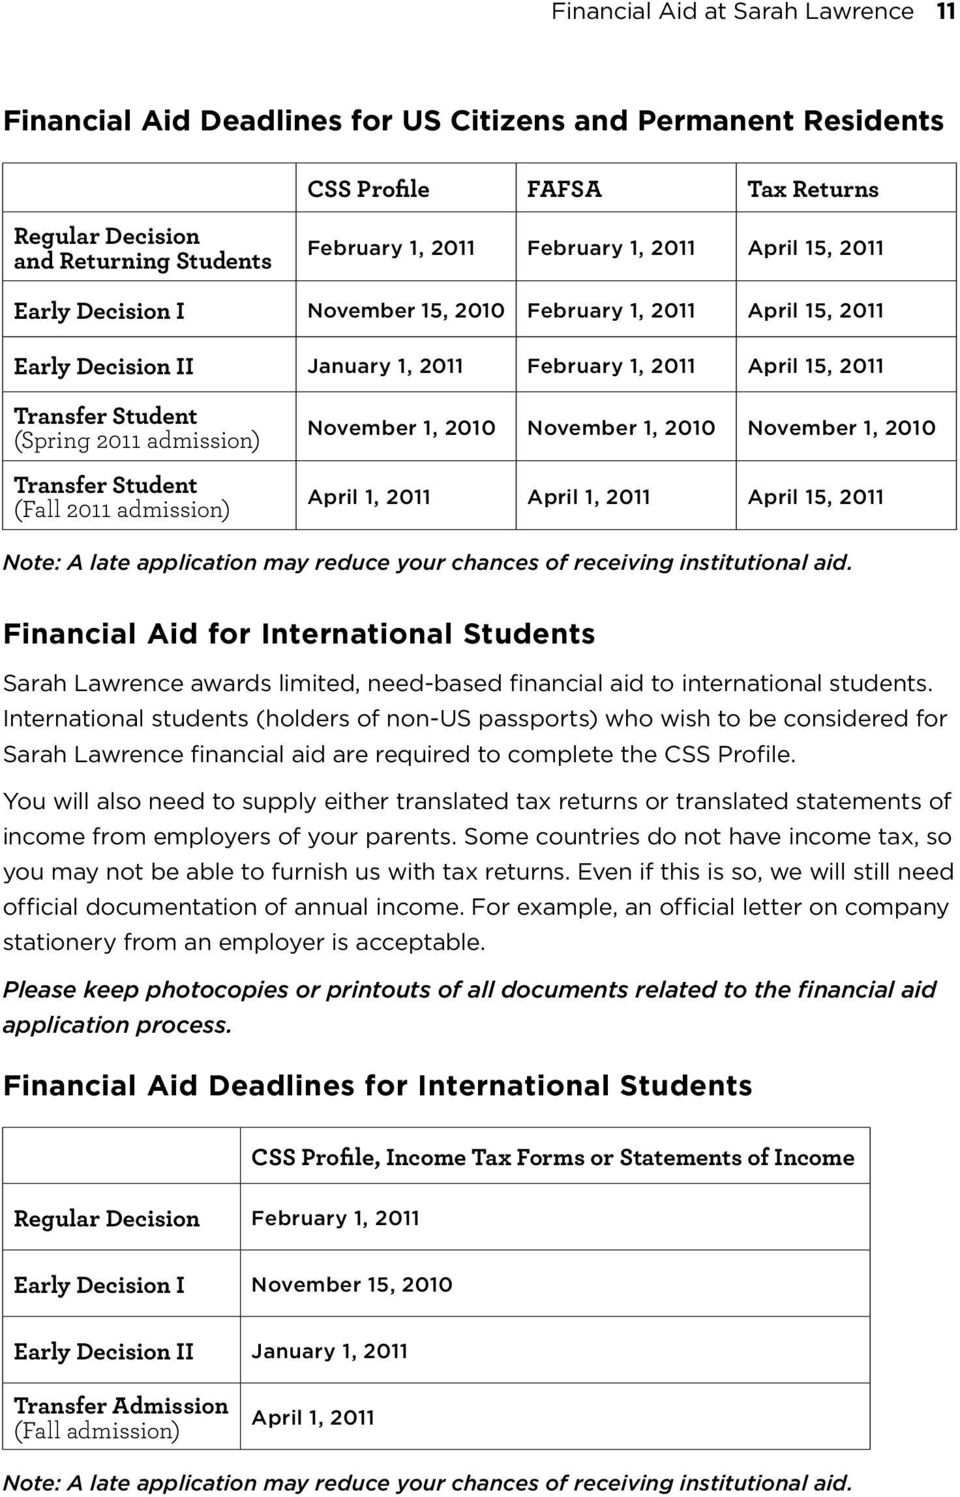 Transfer Student (Fall 2011 admission) November 1, 2010 November 1, 2010 November 1, 2010 April 1, 2011 April 1, 2011 April 15, 2011 Note: A late application may reduce your chances of receiving